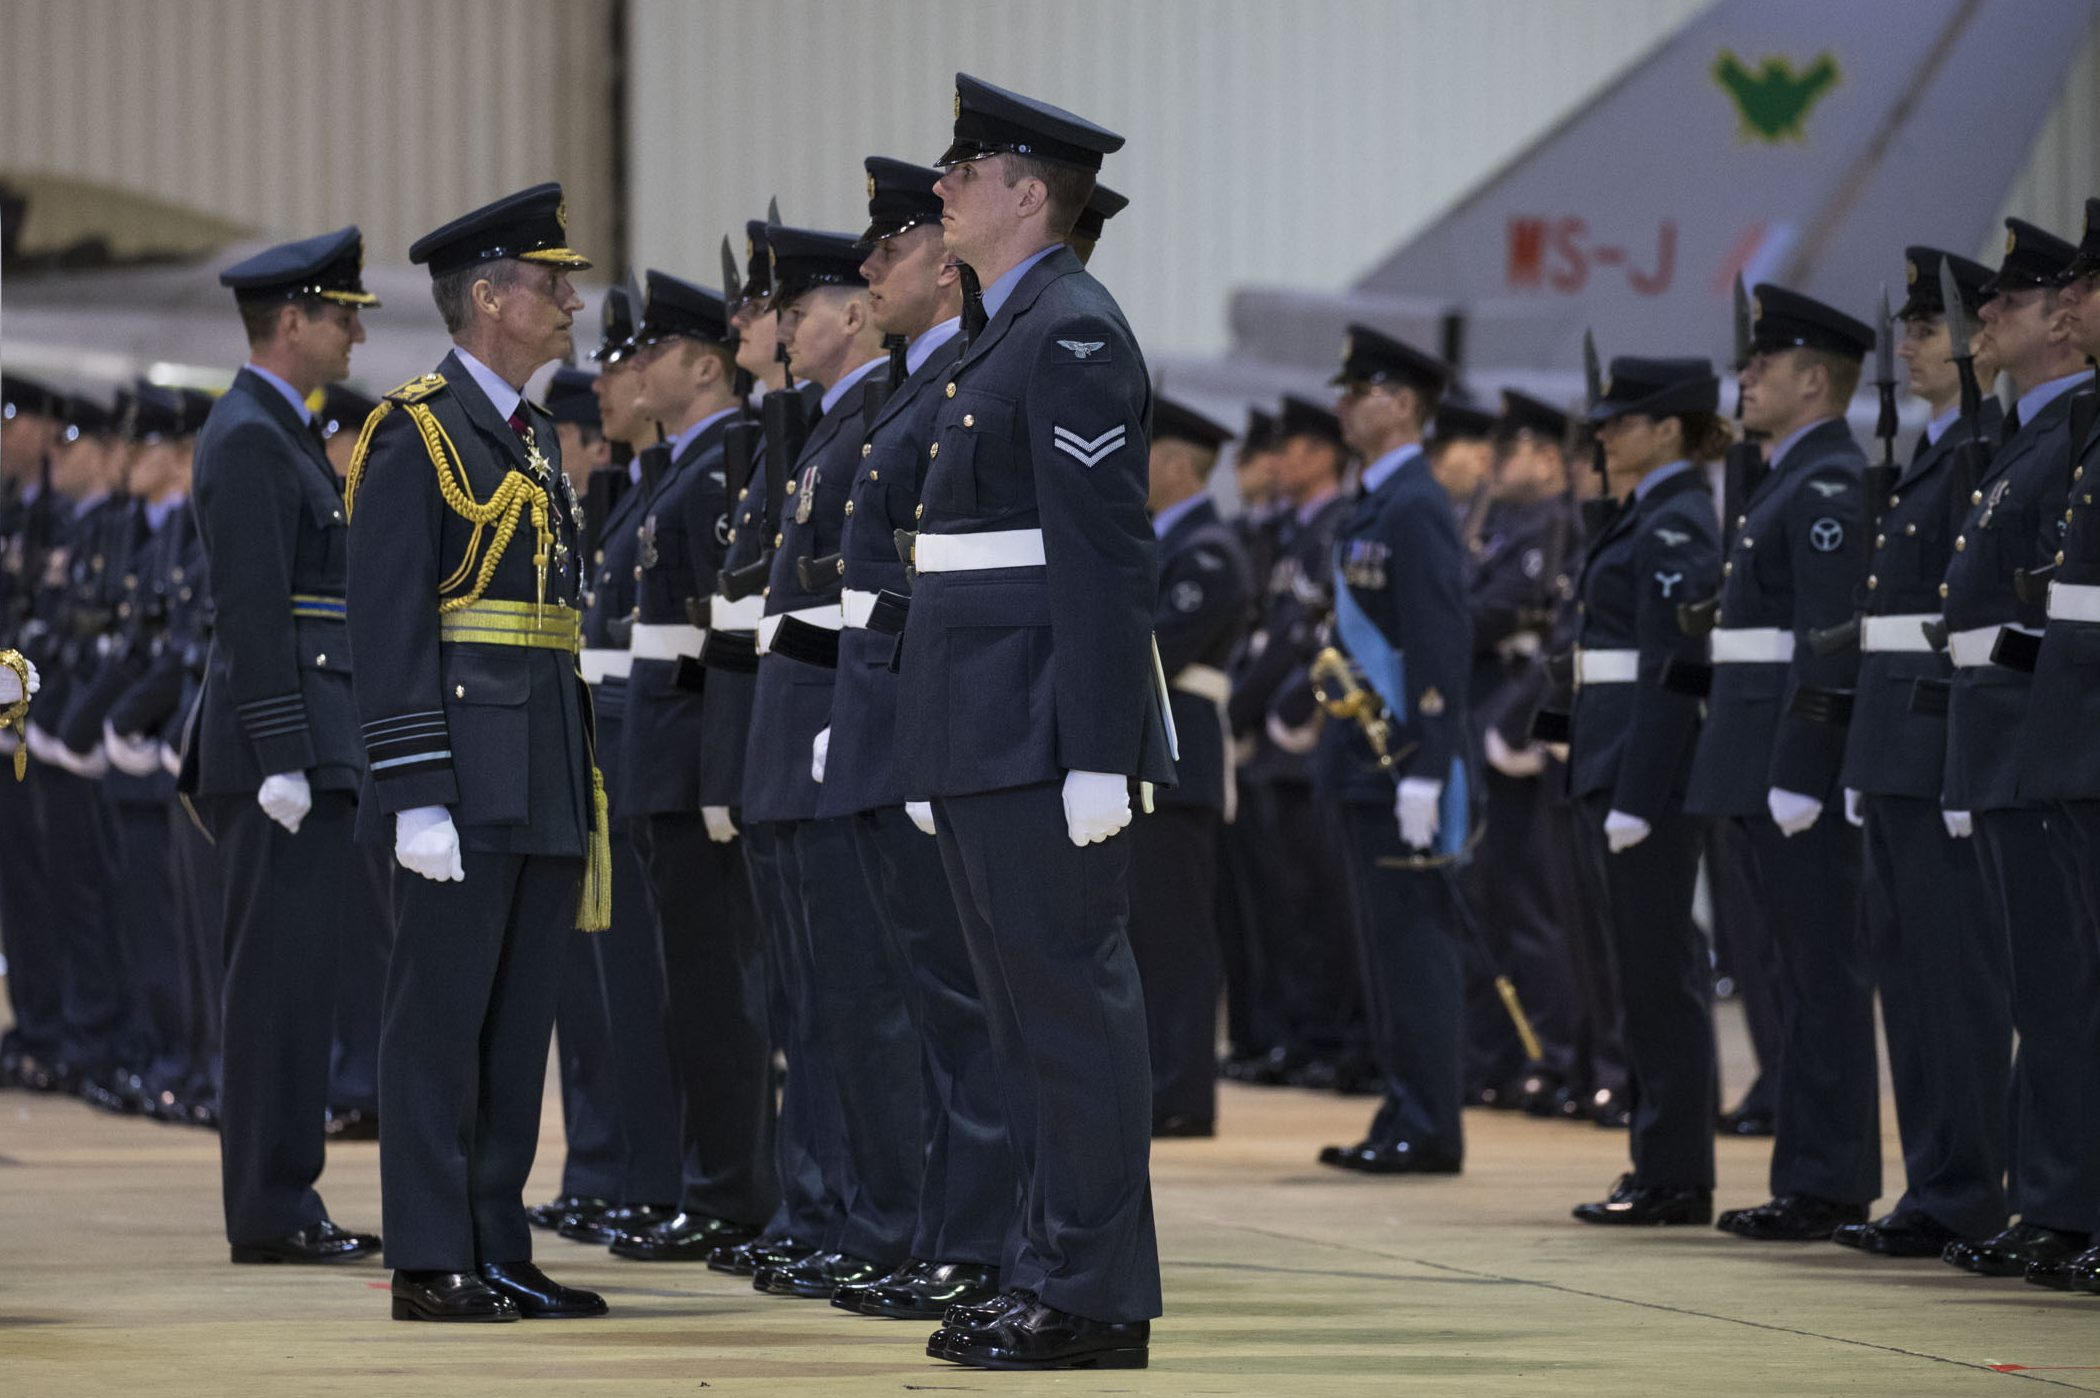 Chief of the Air Staff inspects RAF personnel in a hangar in RAF Lossiemouth